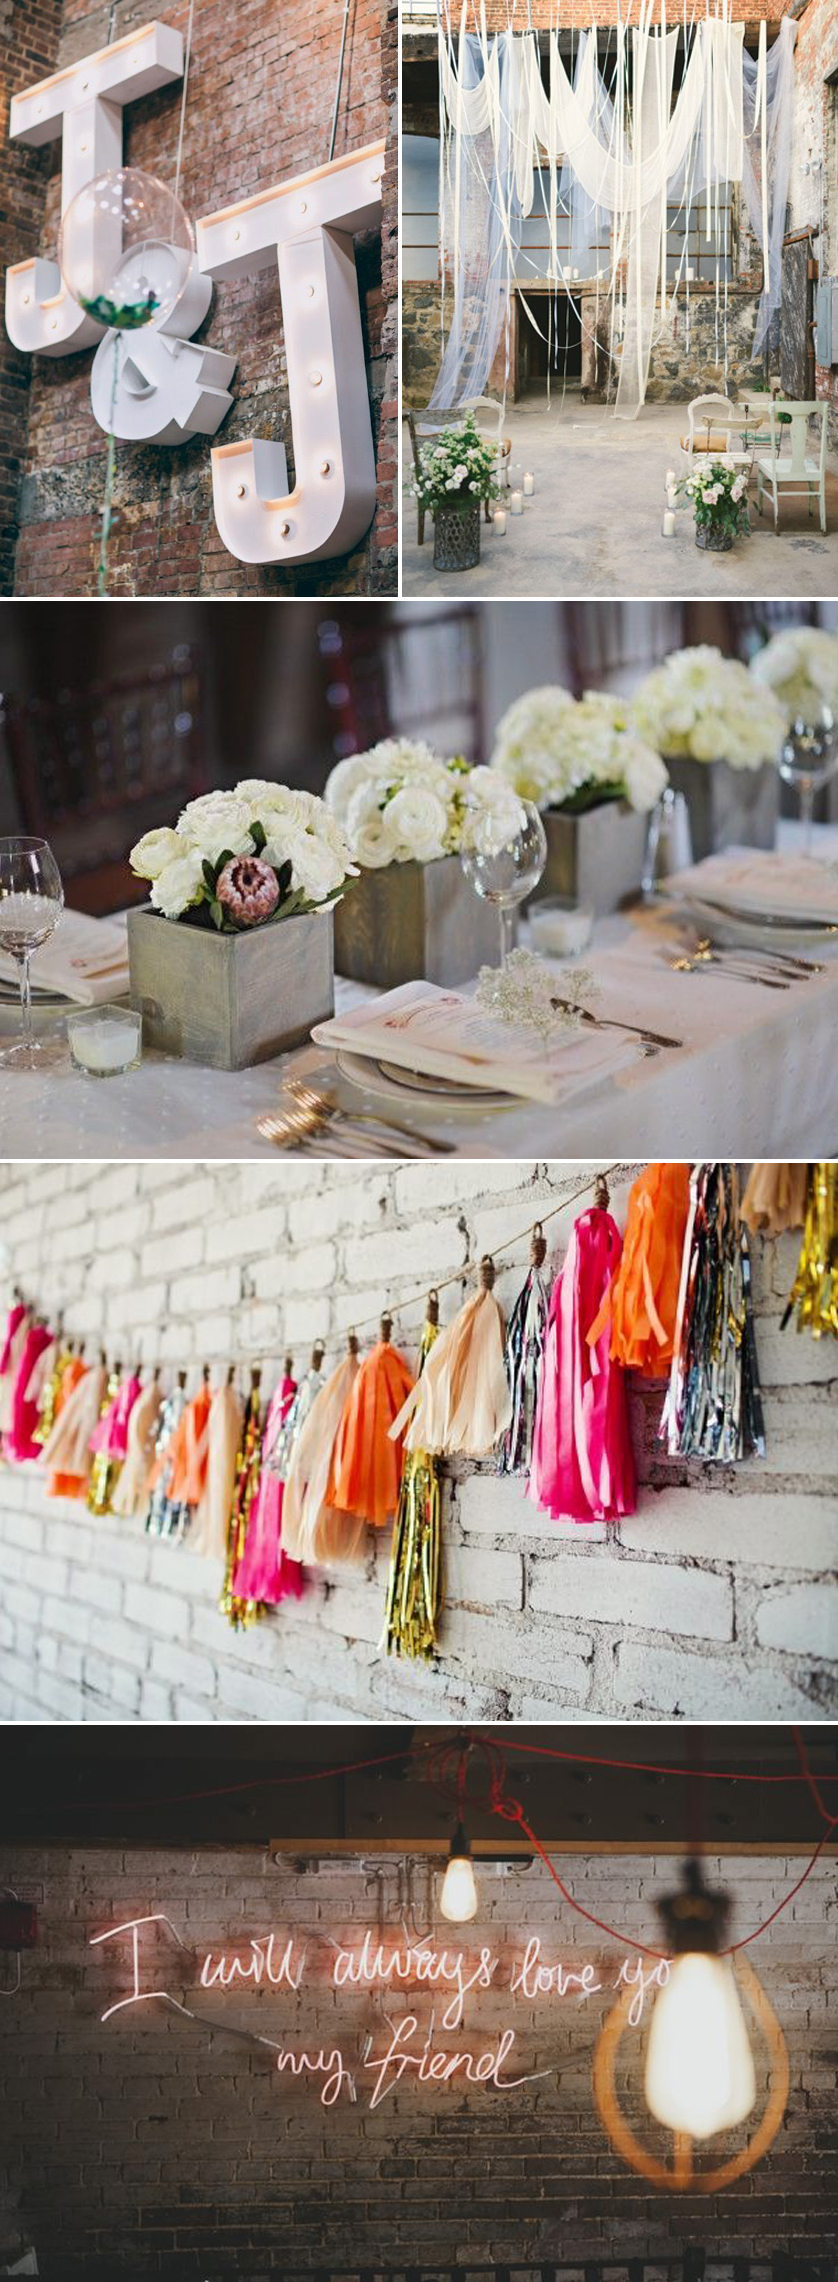 Coco Wedding Venues - City Chic Wedding Style - Decor.